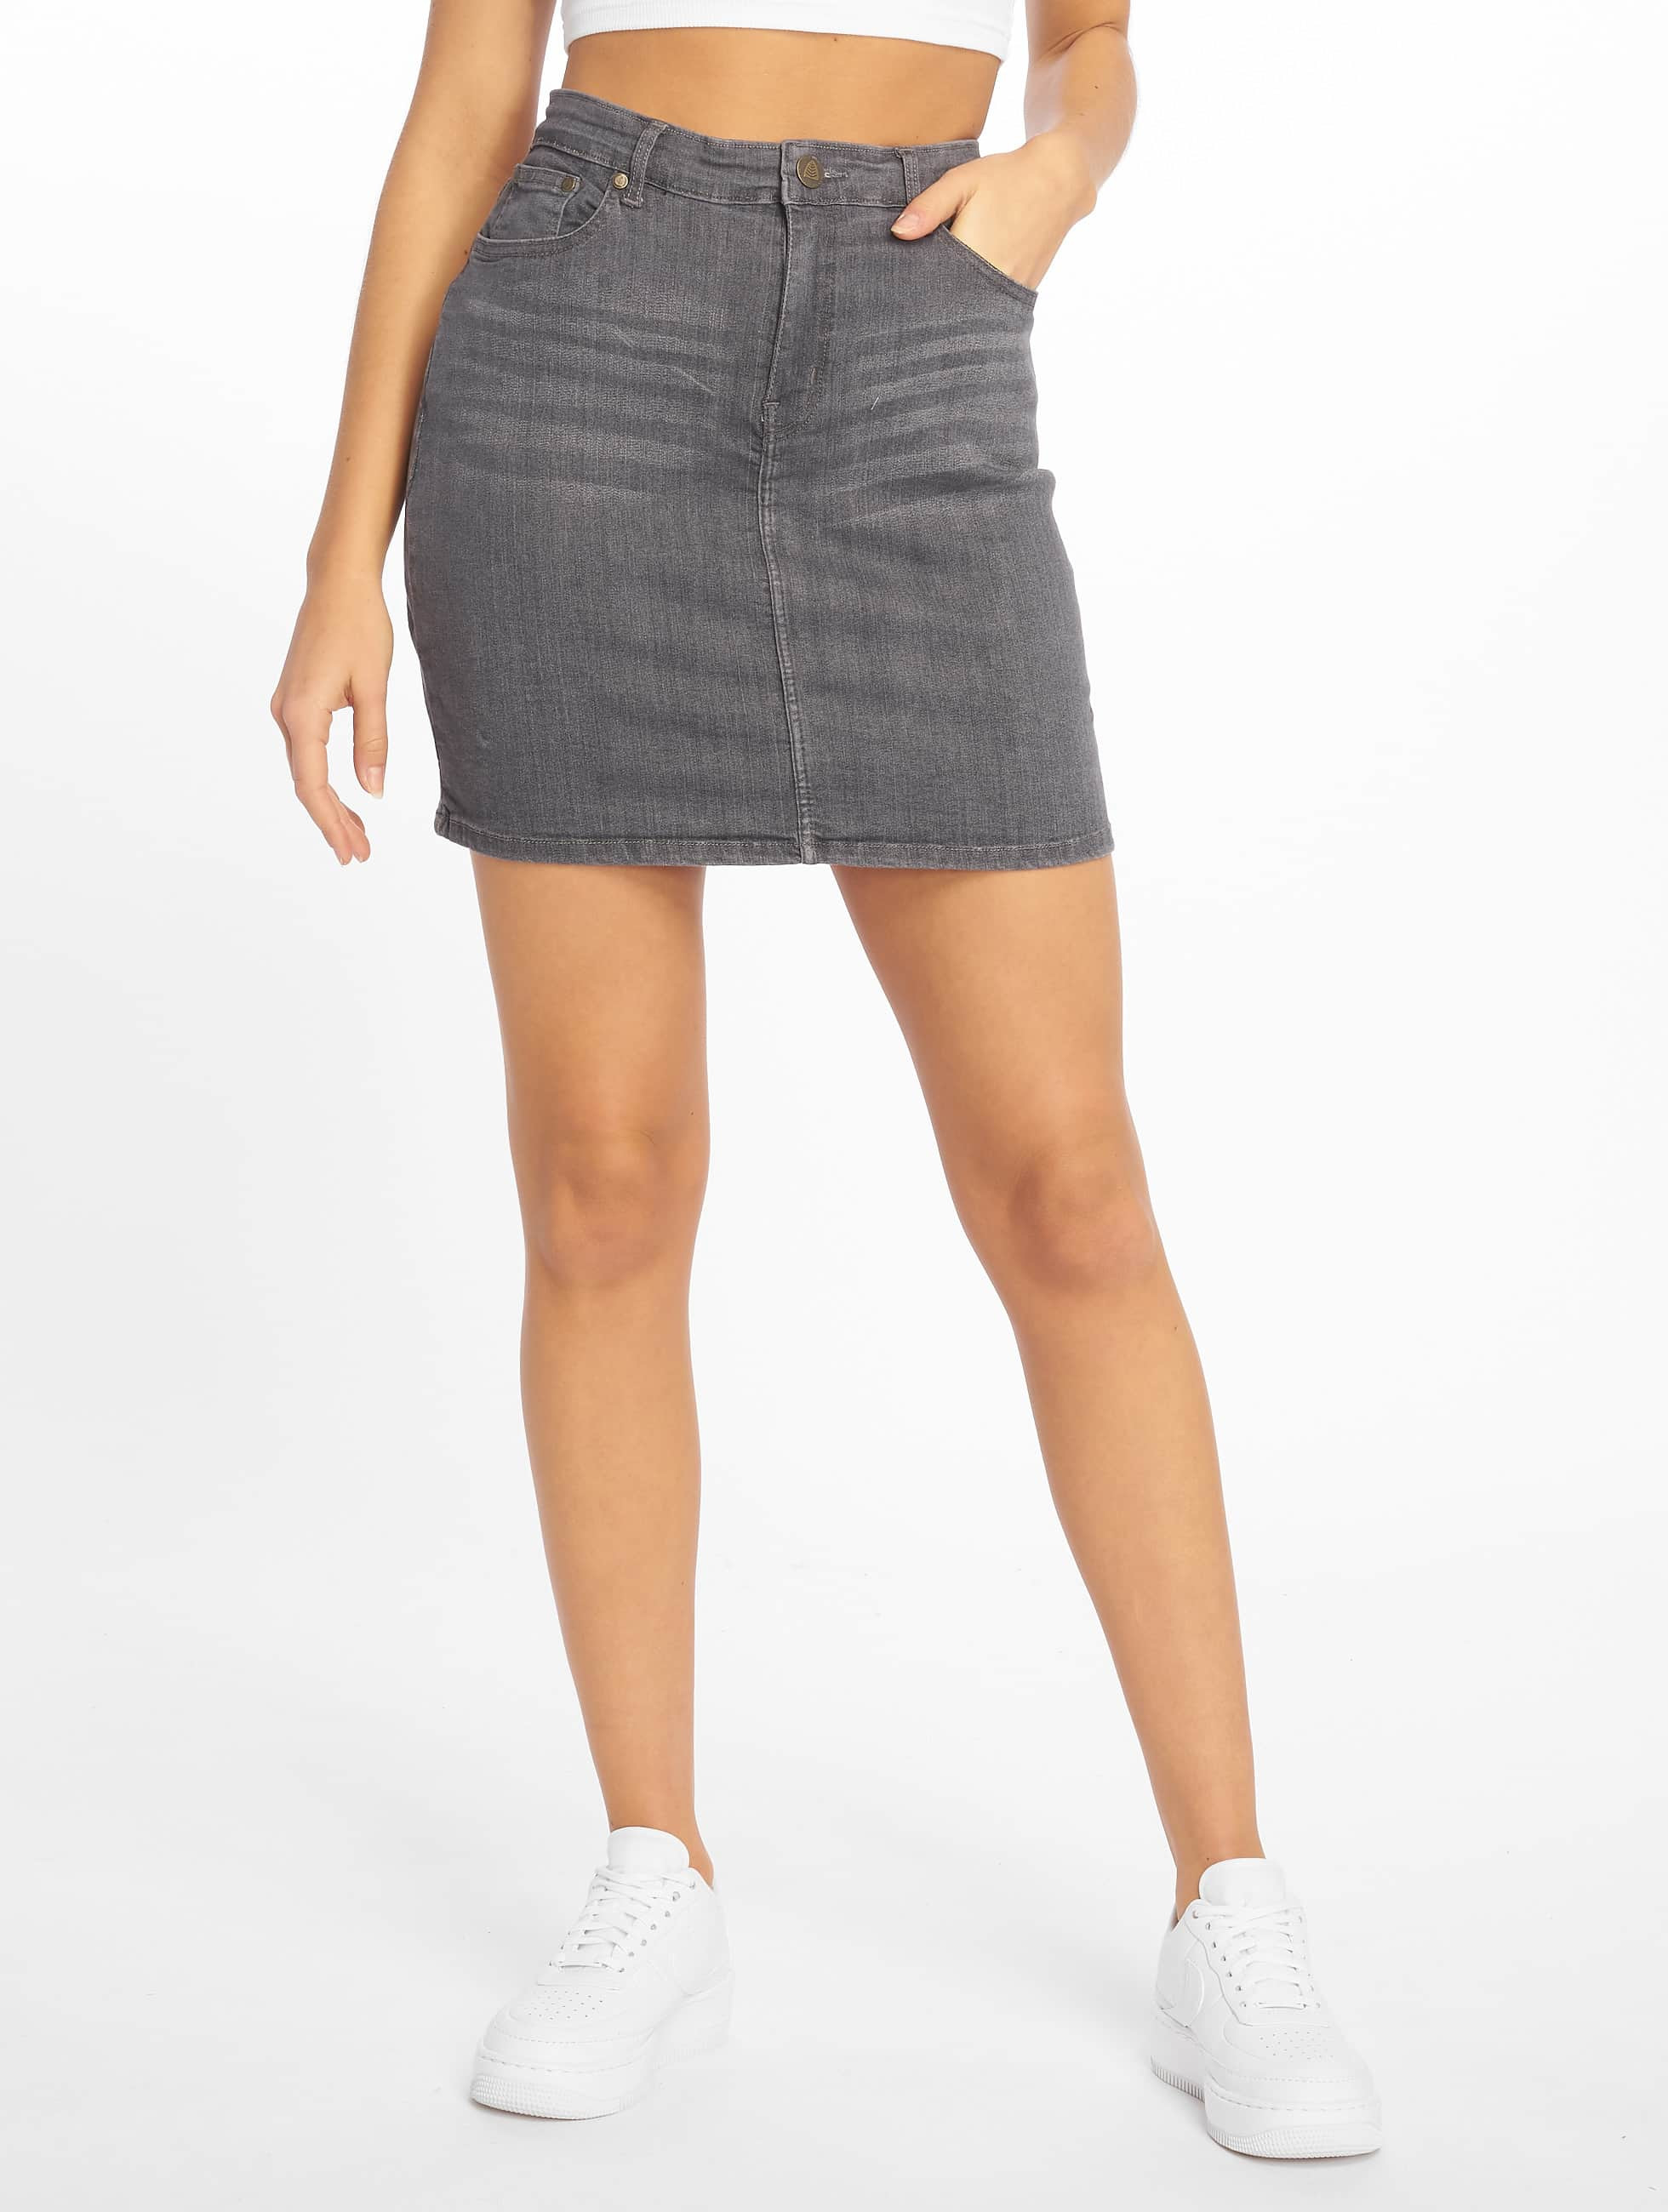 Just Rhyse / Skirt Roseville in grey XS